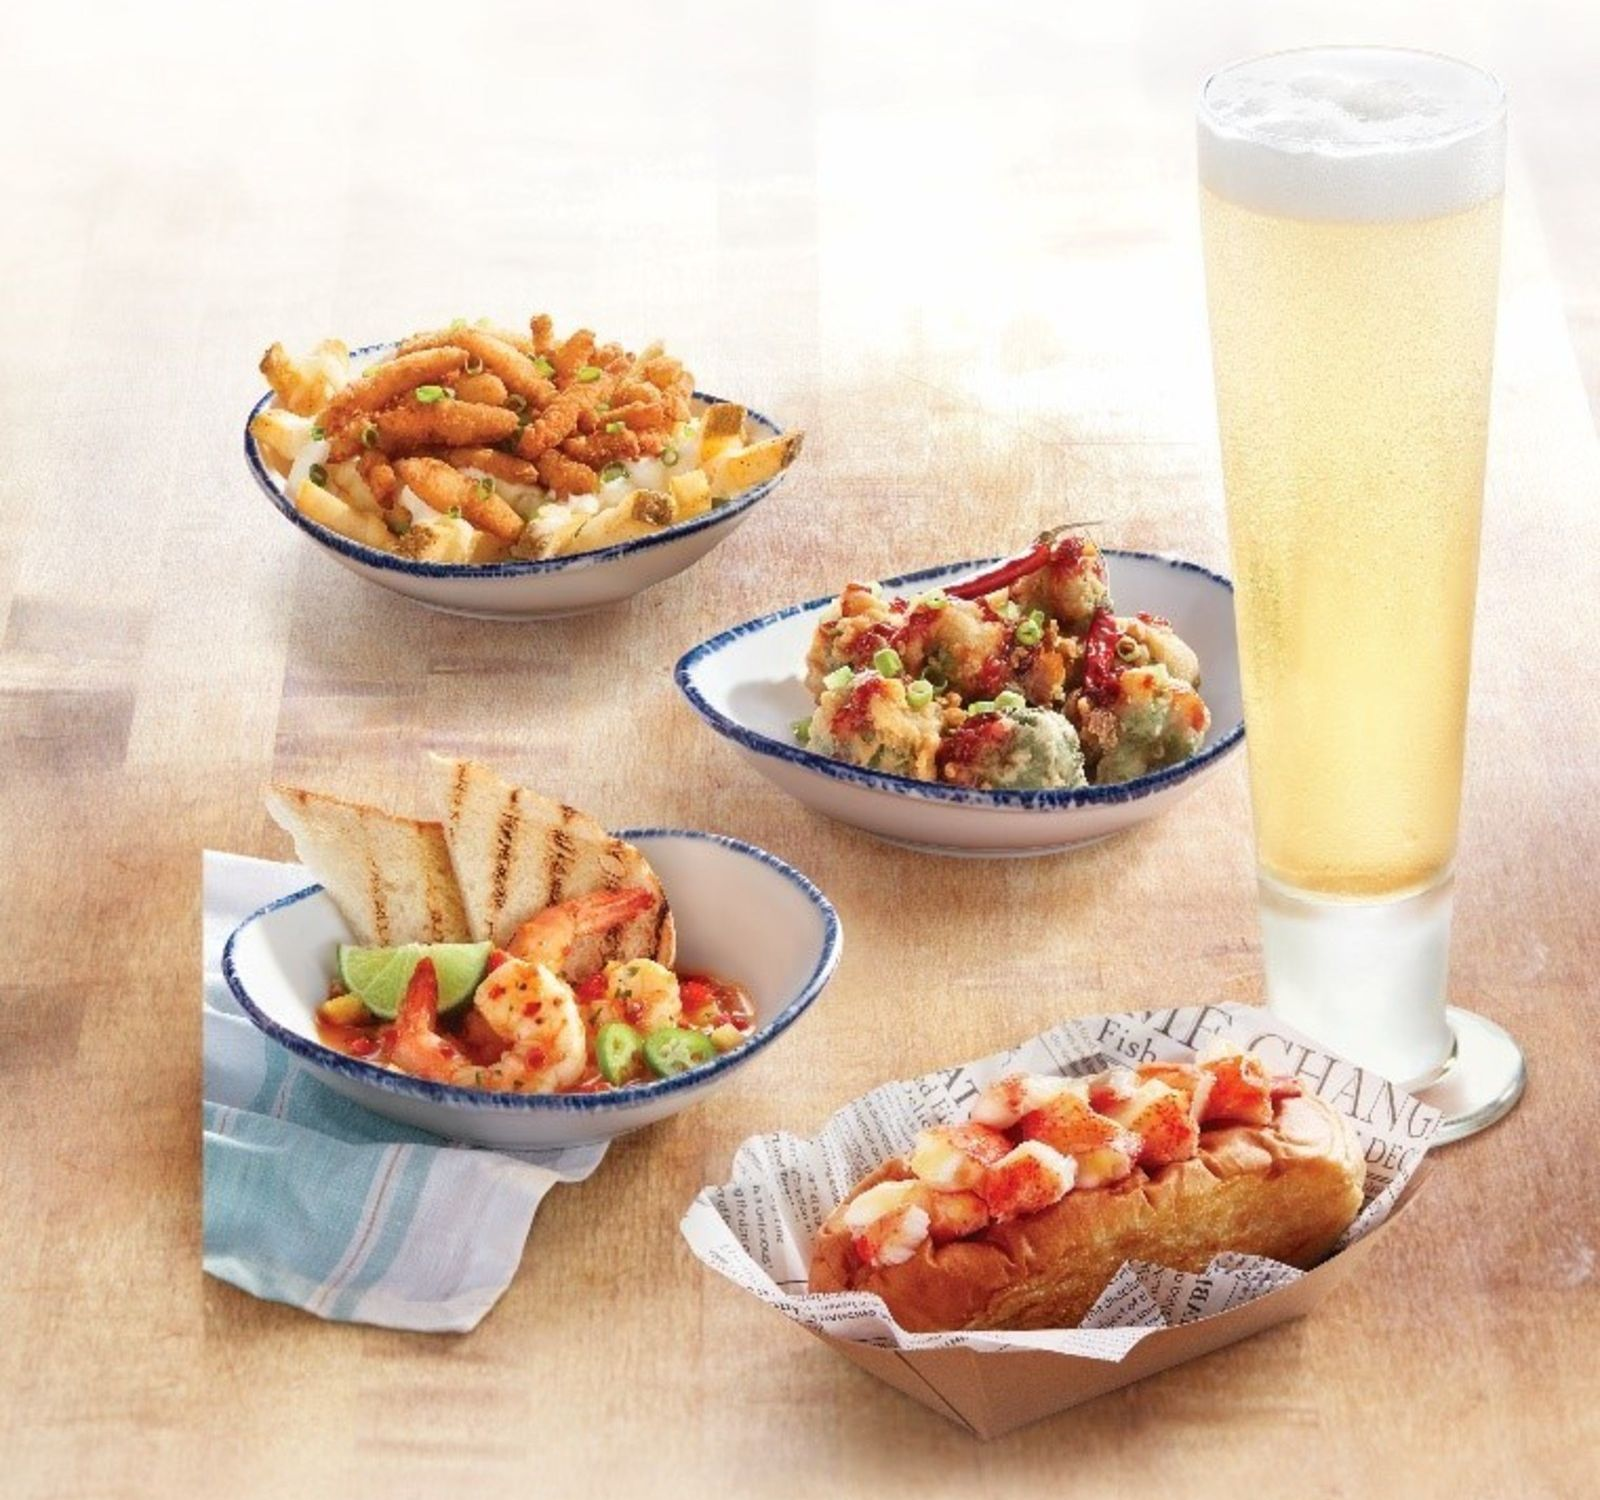 Red Lobster Introduces New Menu Featuring Tasting Plates And Globally-Inspired Entrees ...